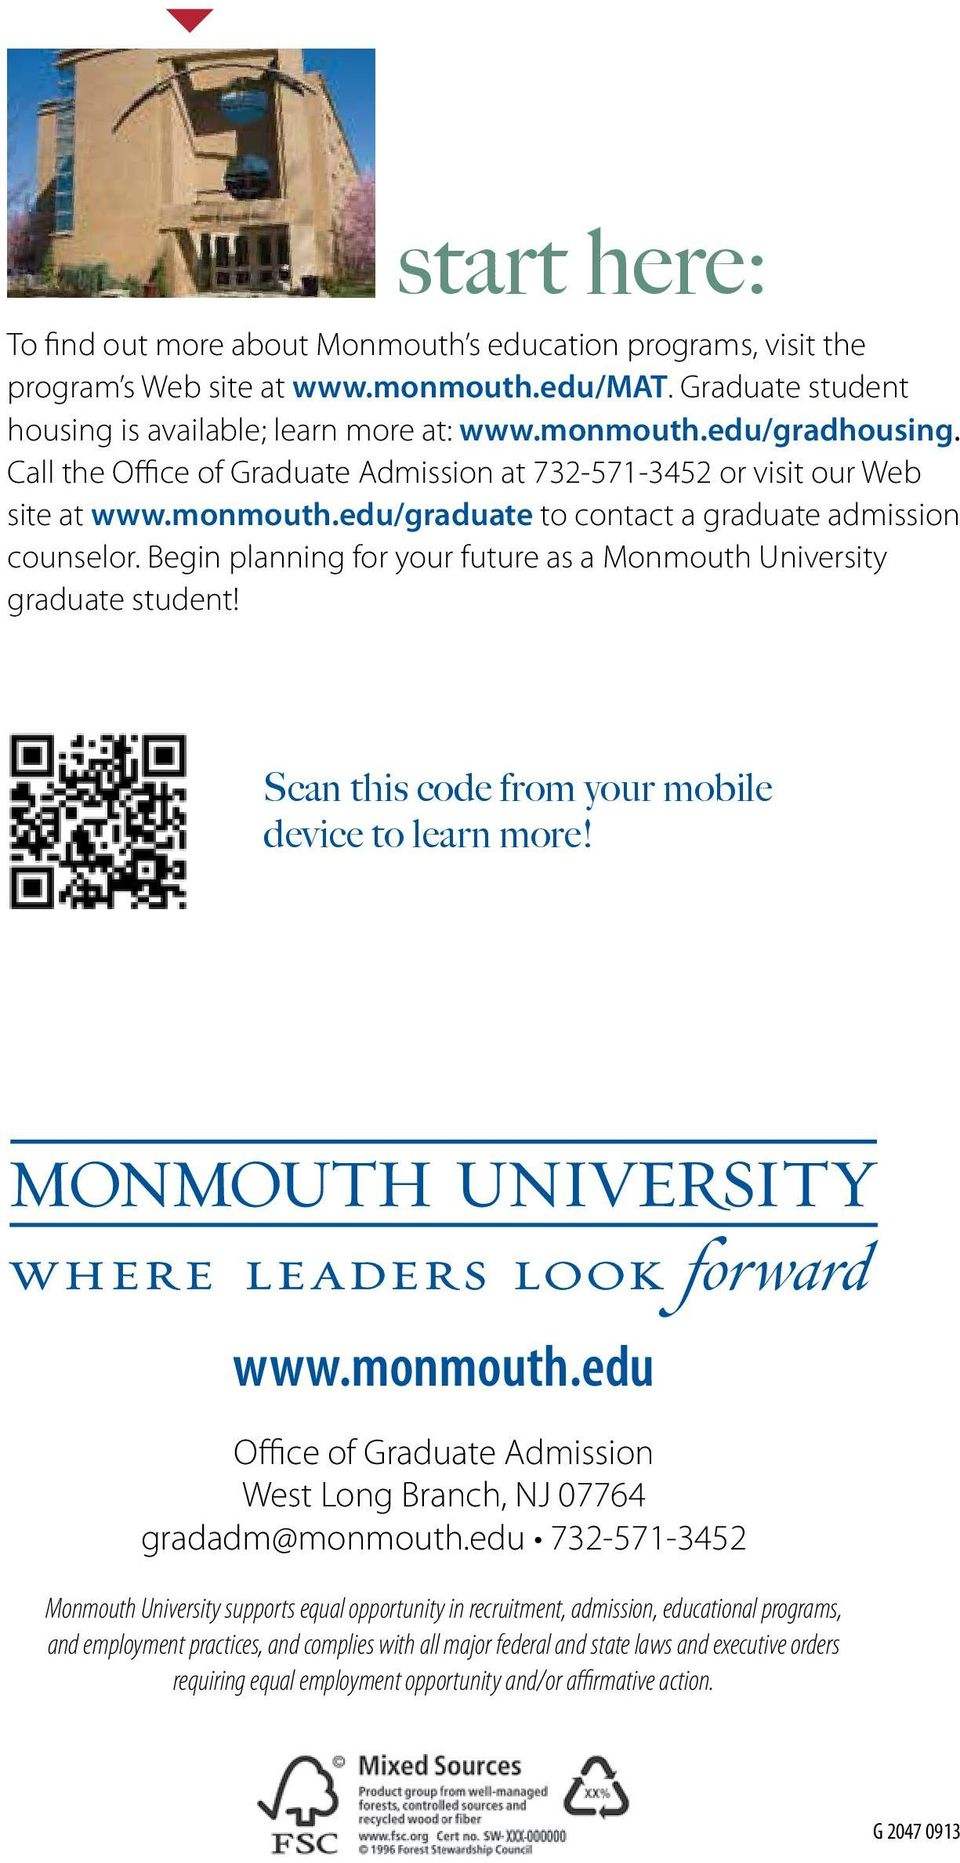 Begin planning for your future as a Monmouth University graduate student! Scan this code from your mobile device to learn more! www.monmouth.